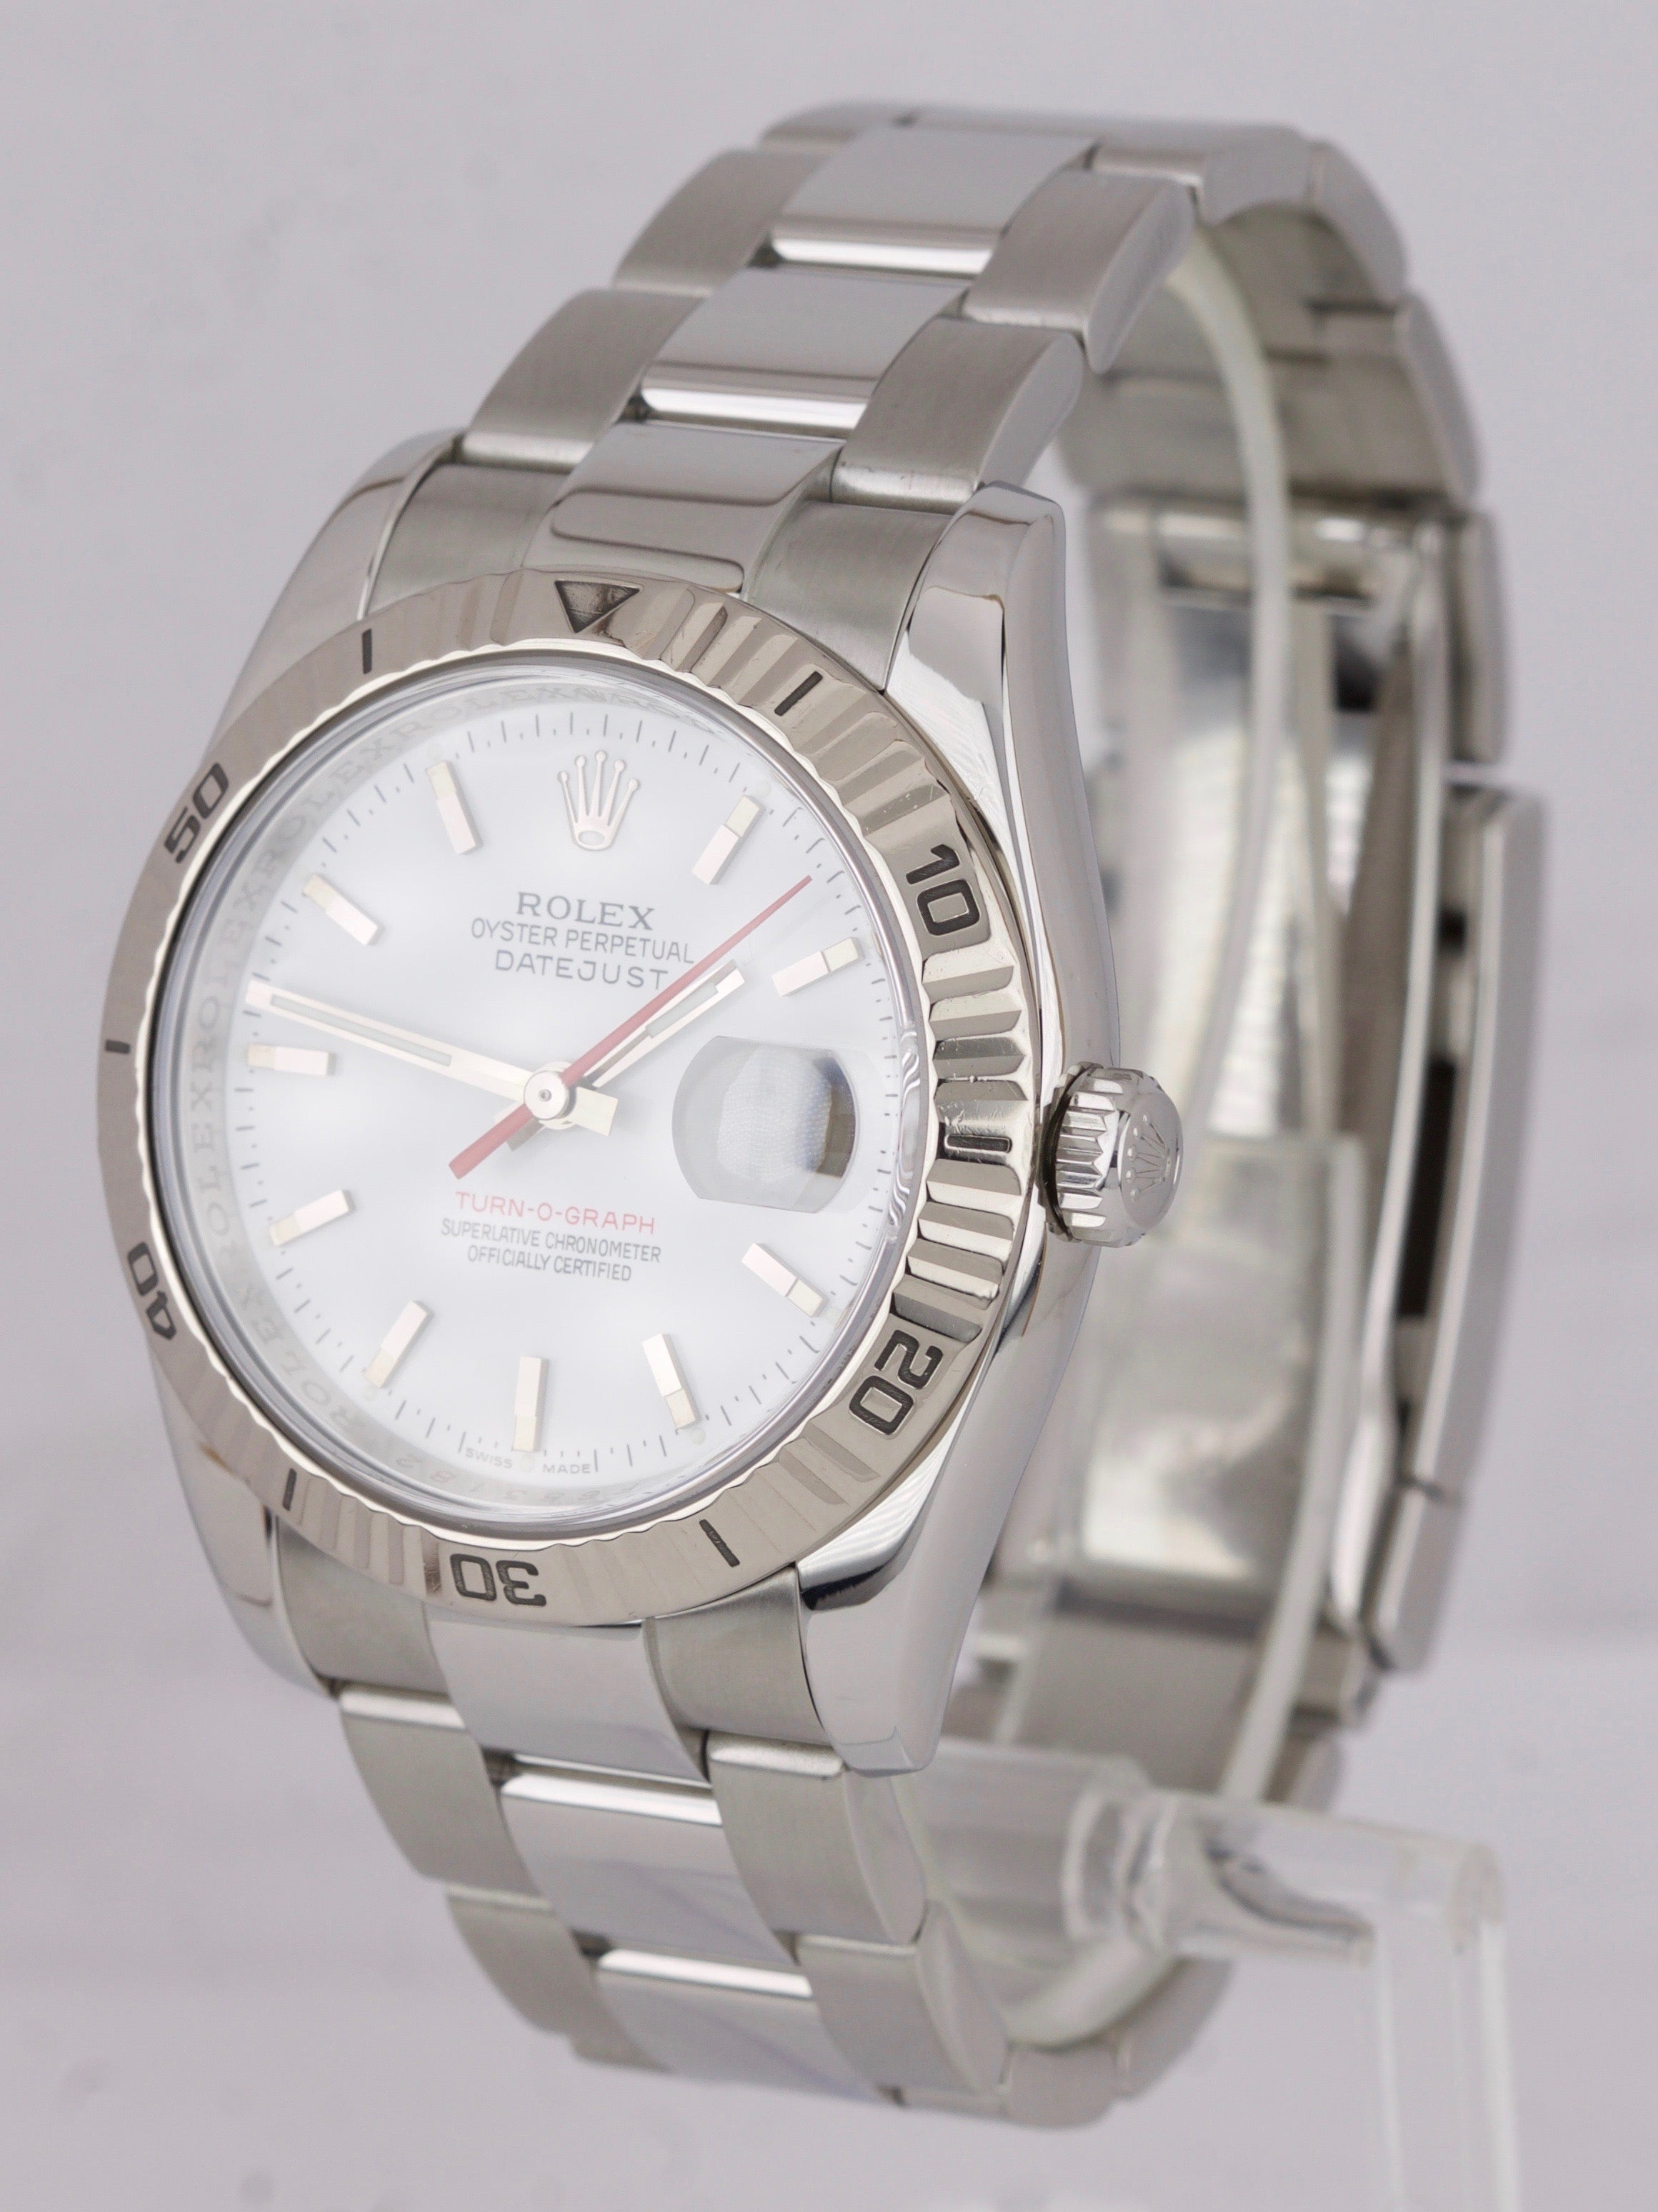 2006 MINT Rolex DateJust 116264 Turn-O-Graph 36mm Thunderbird White Oyster Watch